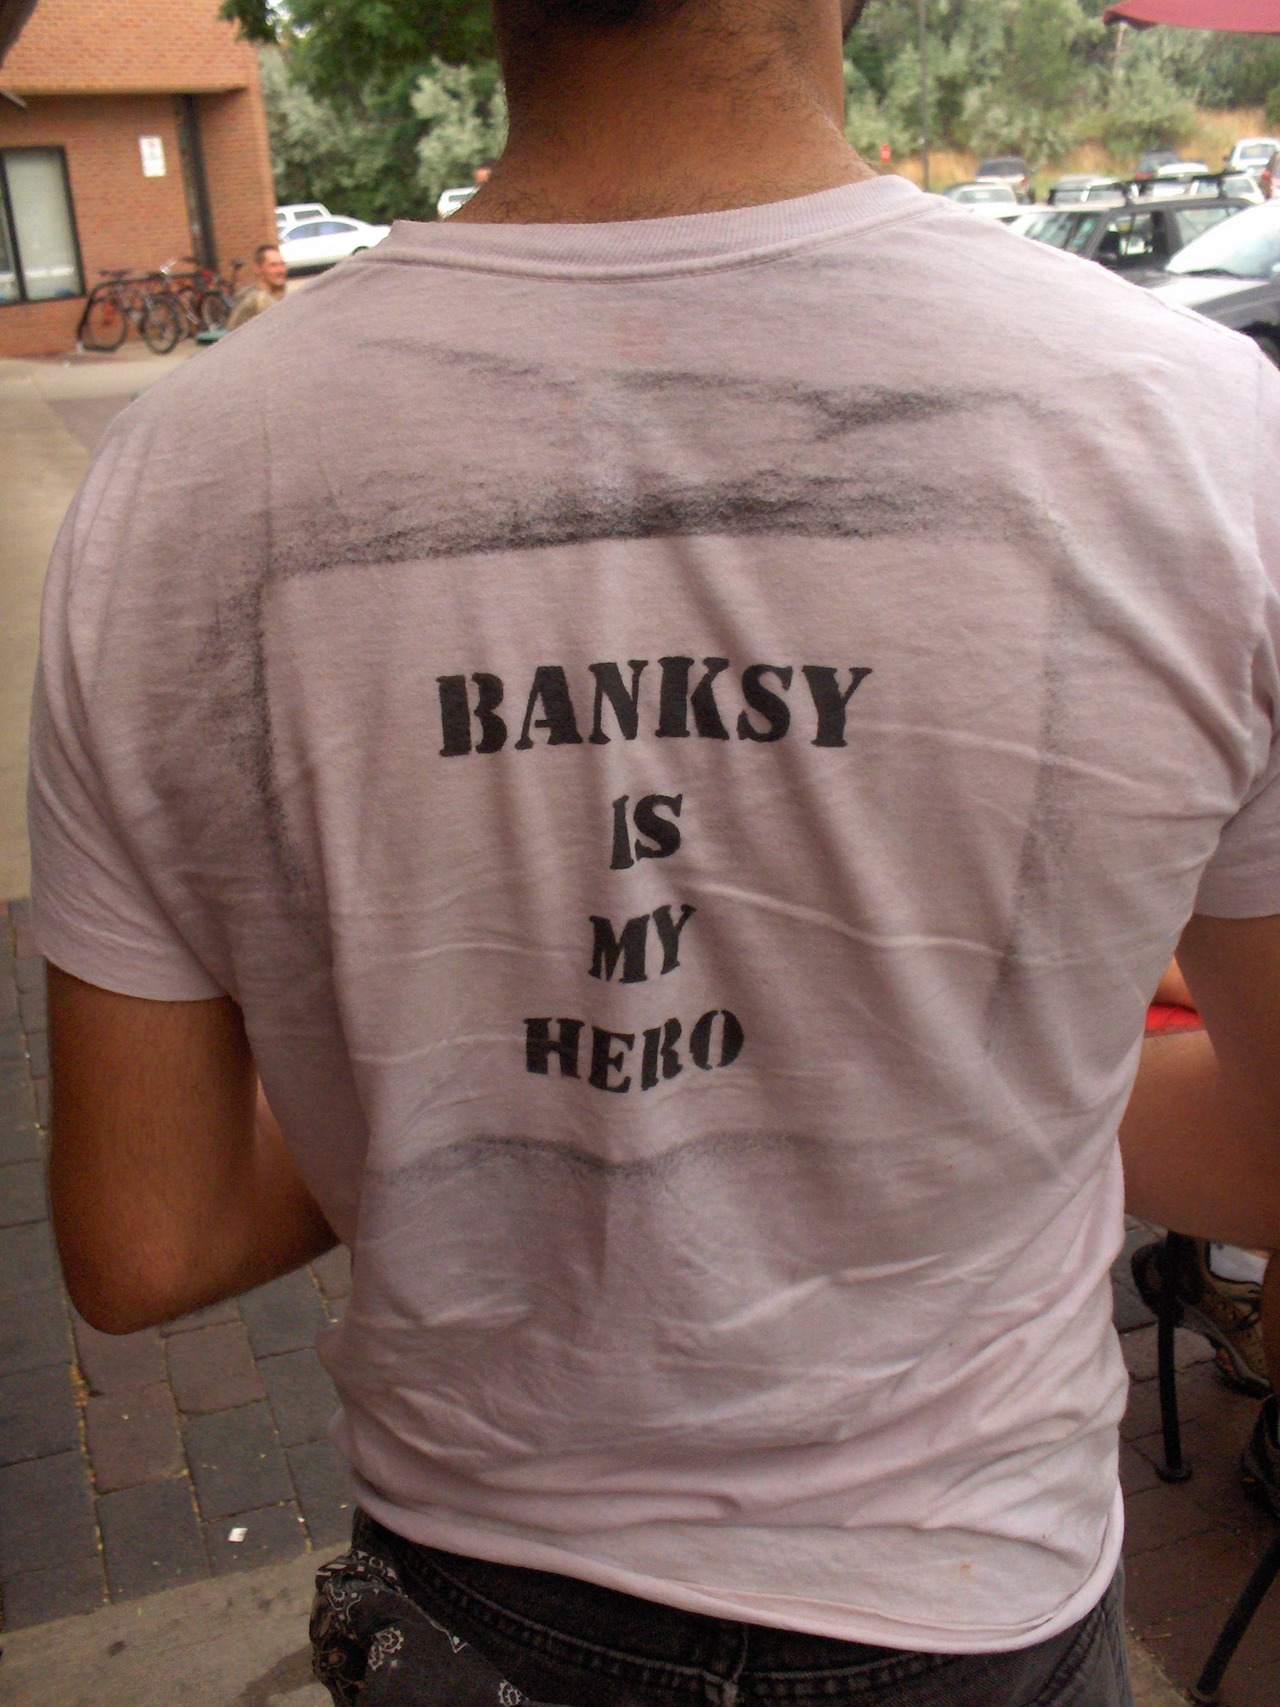 I saw this in real life… Before banksy was huge… in Boulder, Colorado. True Fanboyism